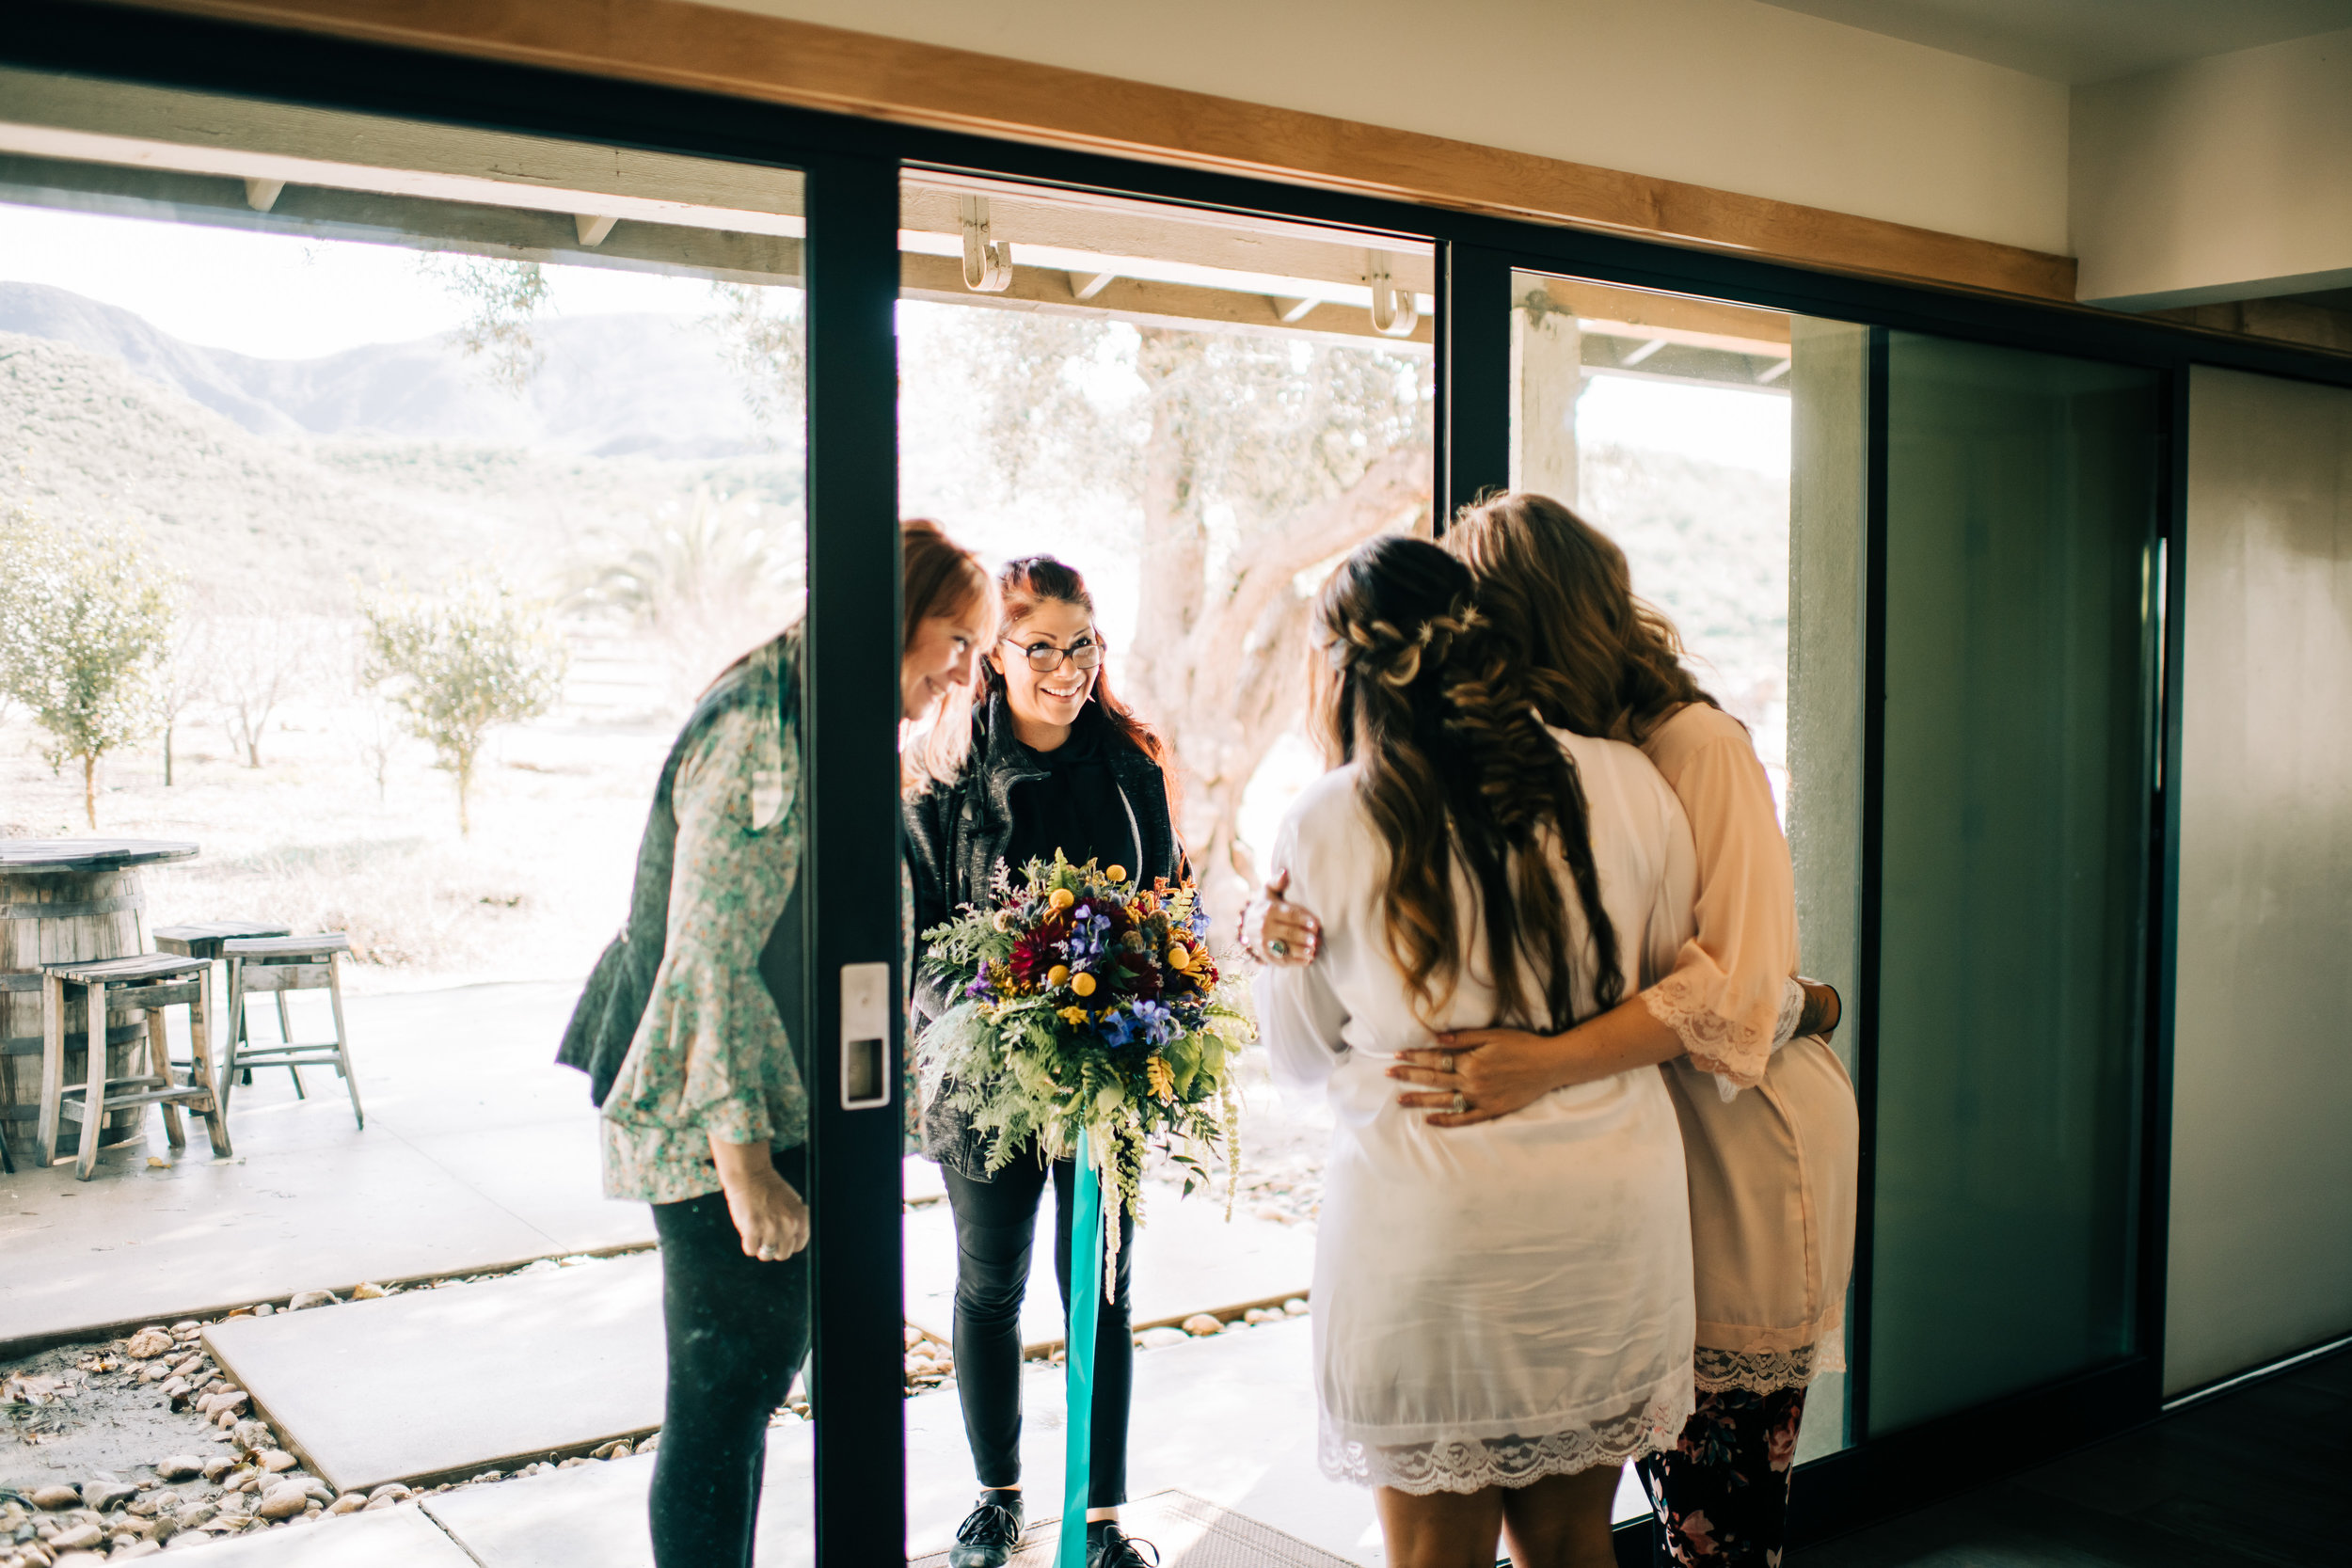 bay area nontraditional wedding photographer southern california boho wedding love light magic san francisco oakland northern california-87.jpg